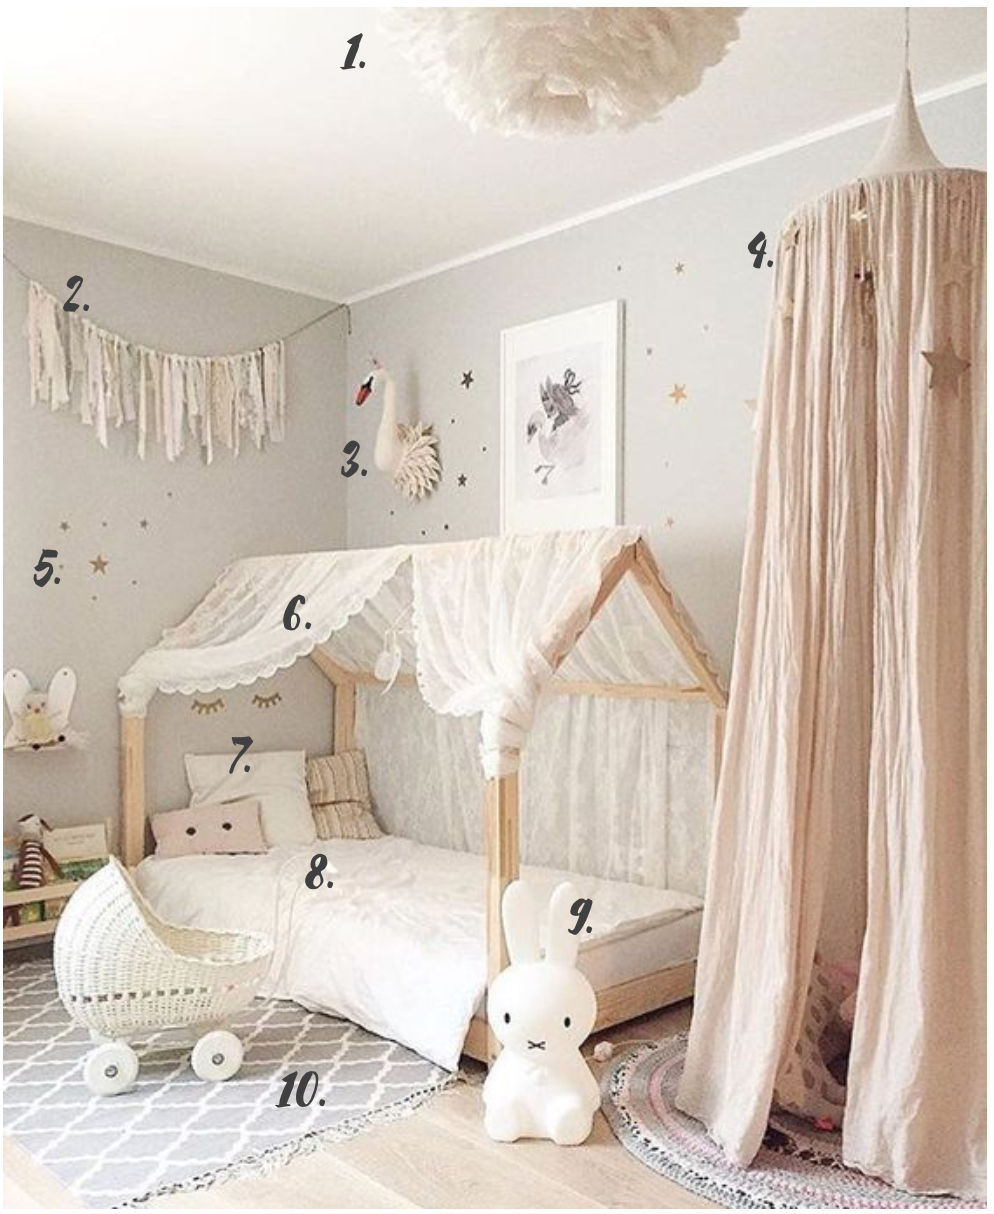 SHOP THE ROOM | Décoration chambre filles | Inspiration ballet